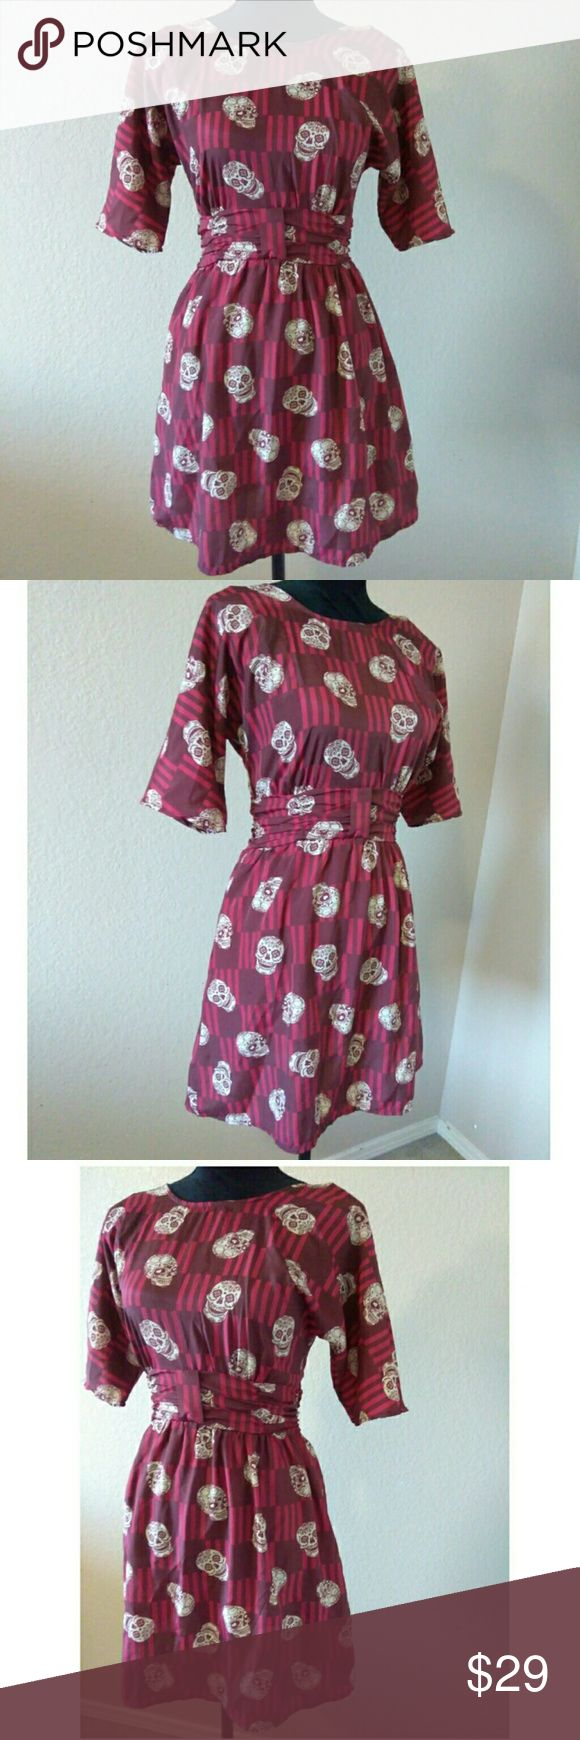 Maroon Retro Inspired Sugar Skull Dress Cute maroon sugar skull dress. Definitely retro inspired but modern aged. Brand is Xhiliration. Size XS. 100% Polyester. Approx measurements are 16 inches chest, 12 inches waist, 32.5 inches length. Great Condition. Xhilaration Dresses